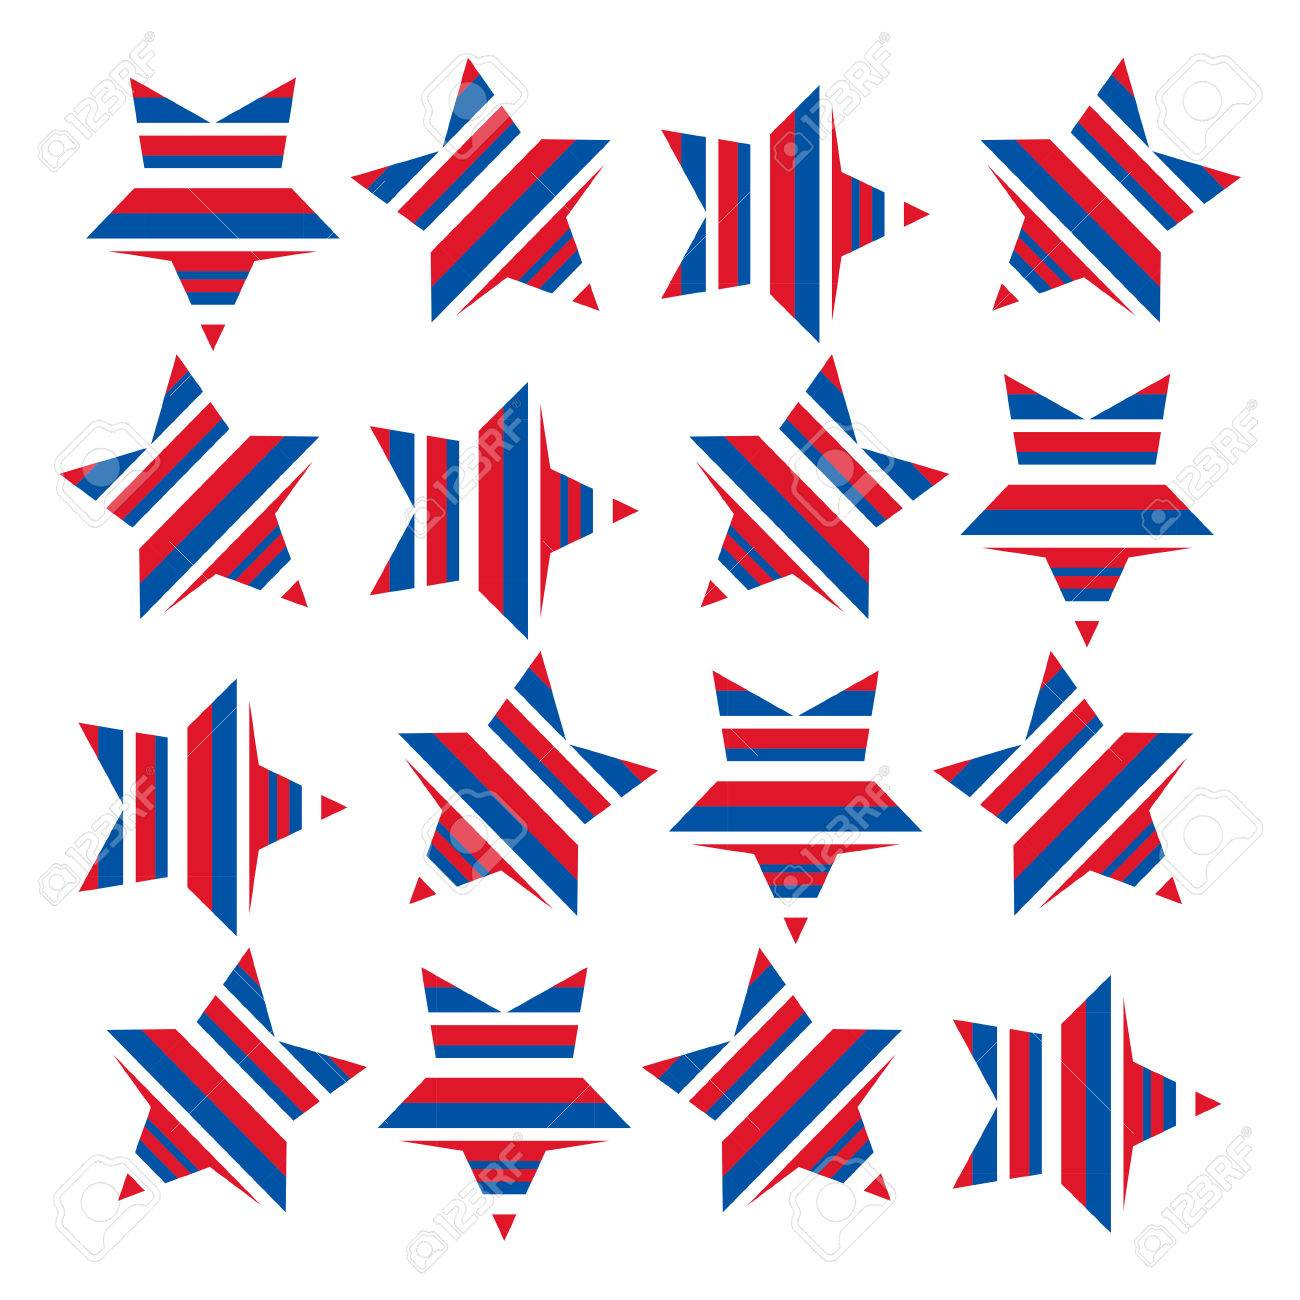 A stars and stripes pattern symbolising the American flag. Stars...